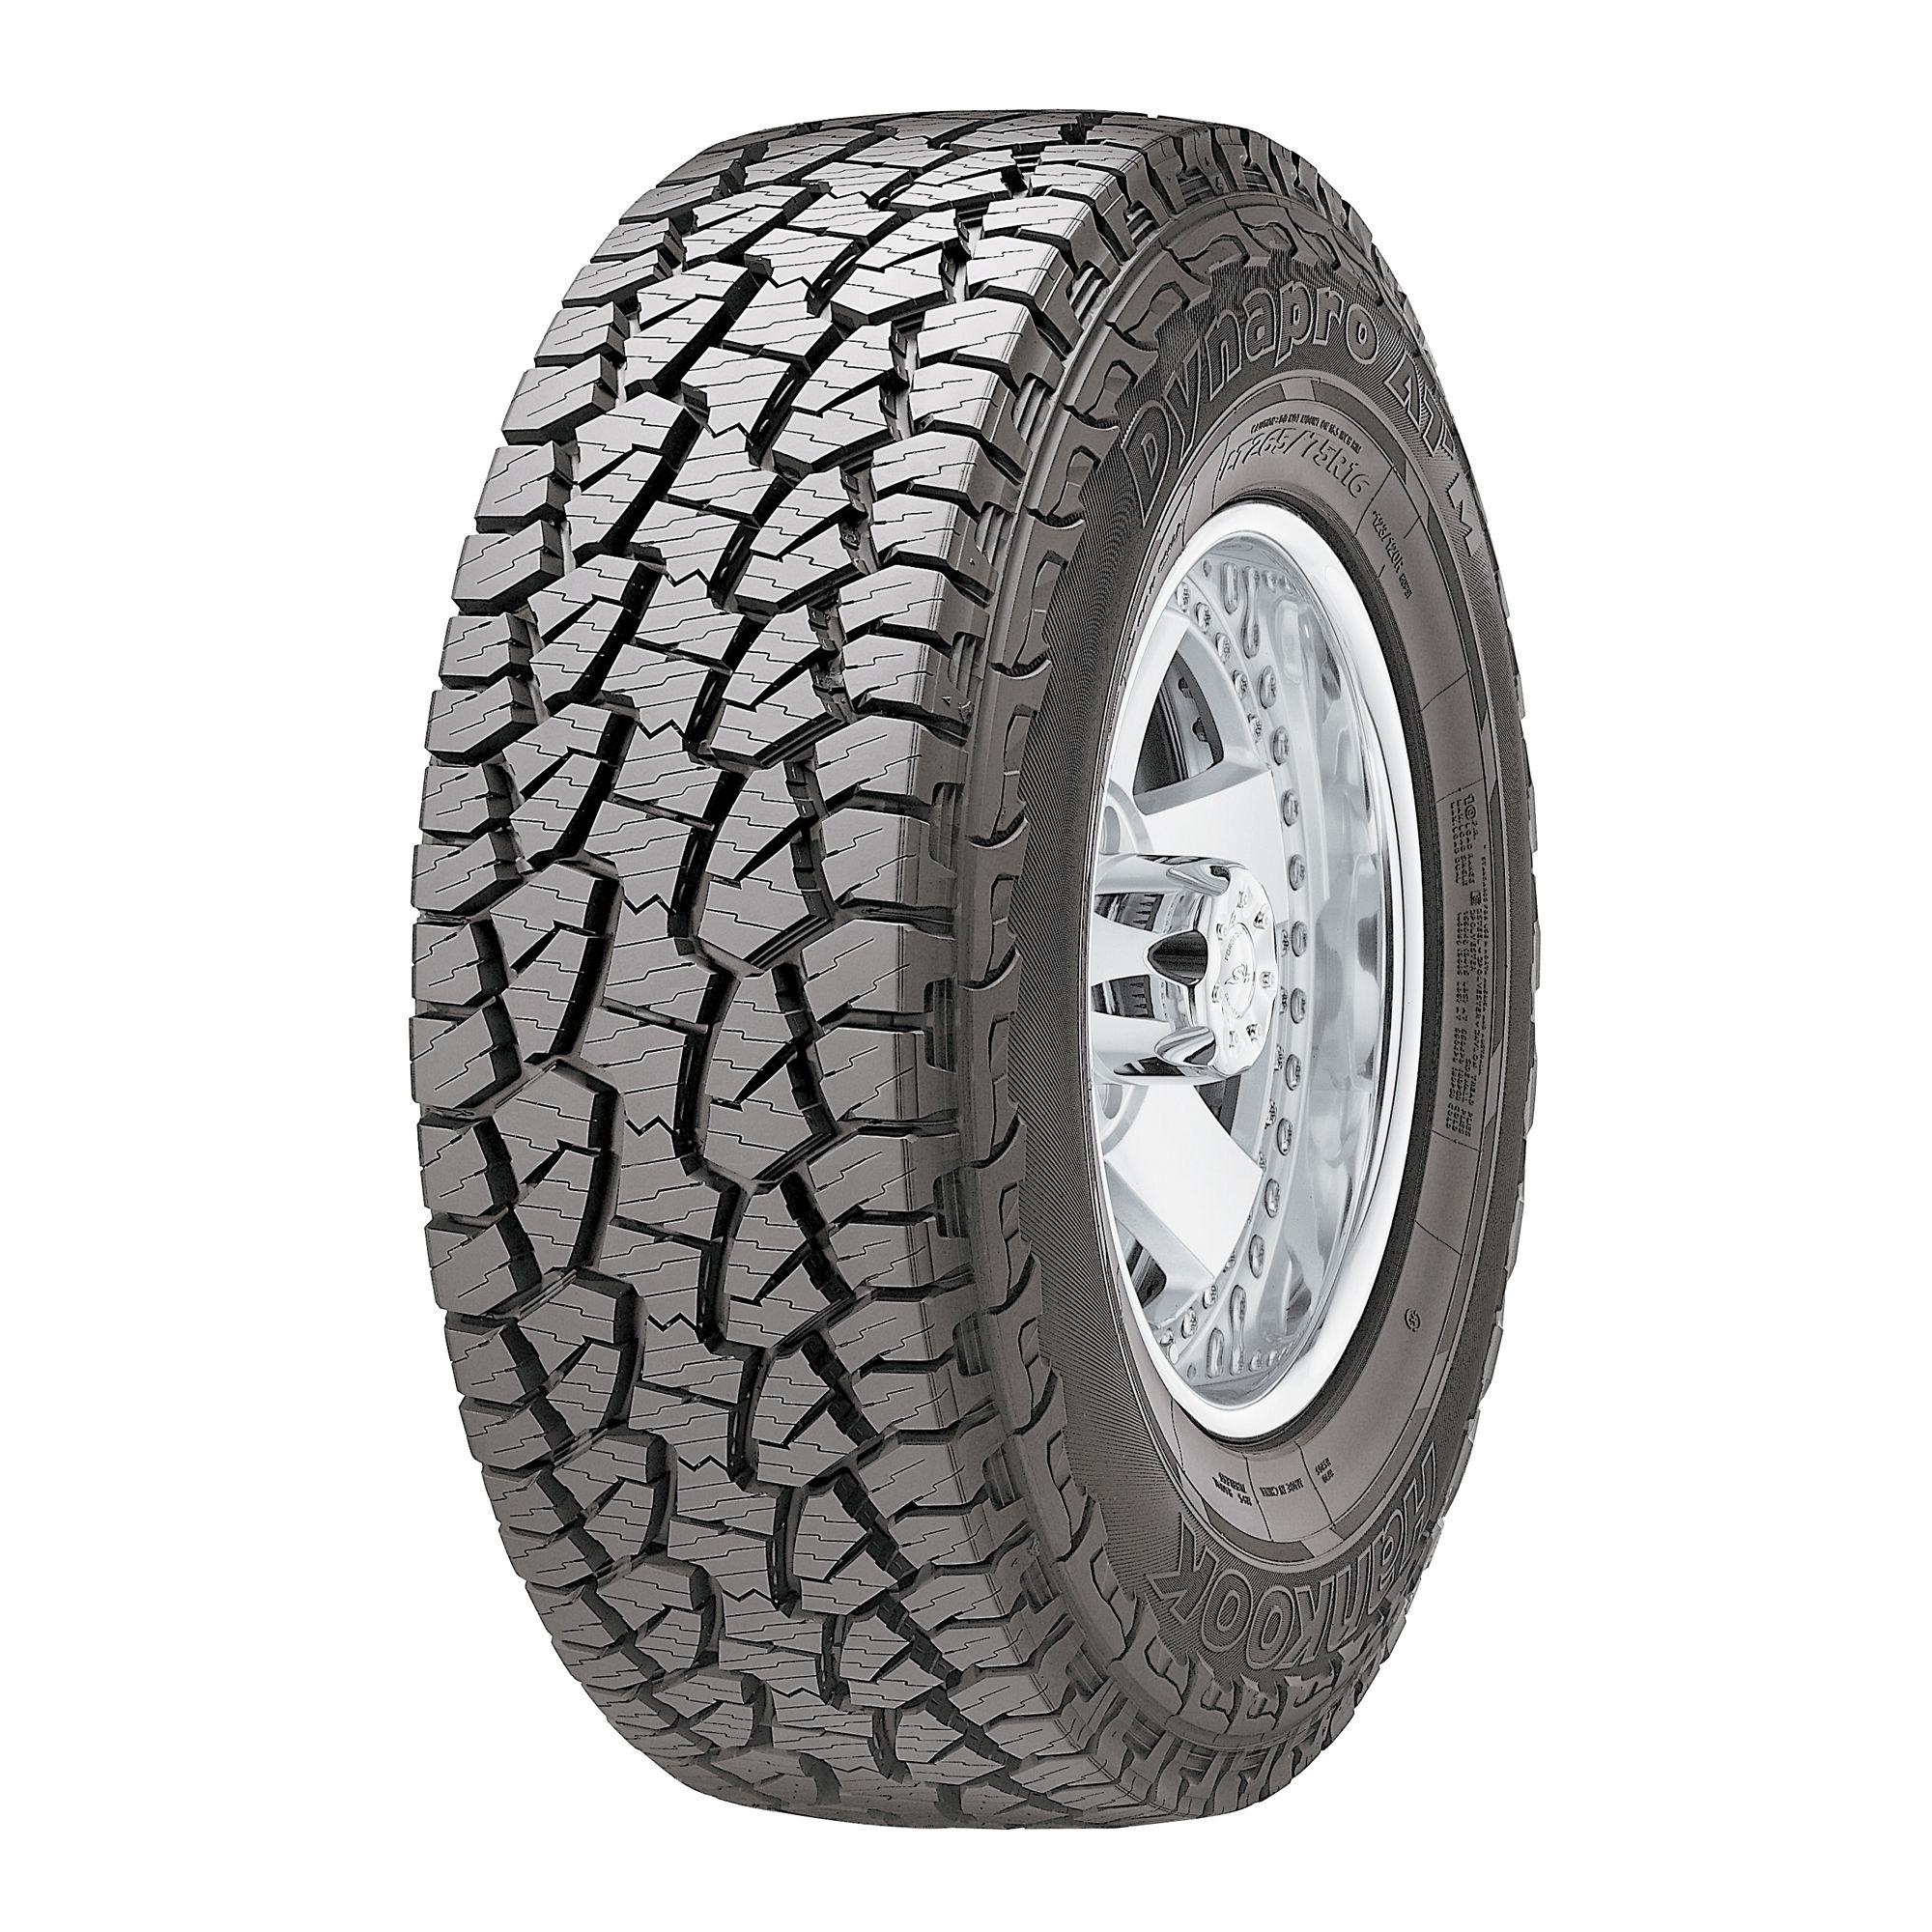 Buy cheap Hankook Dynapro AT-M (RF10) tyres from your local Setyres